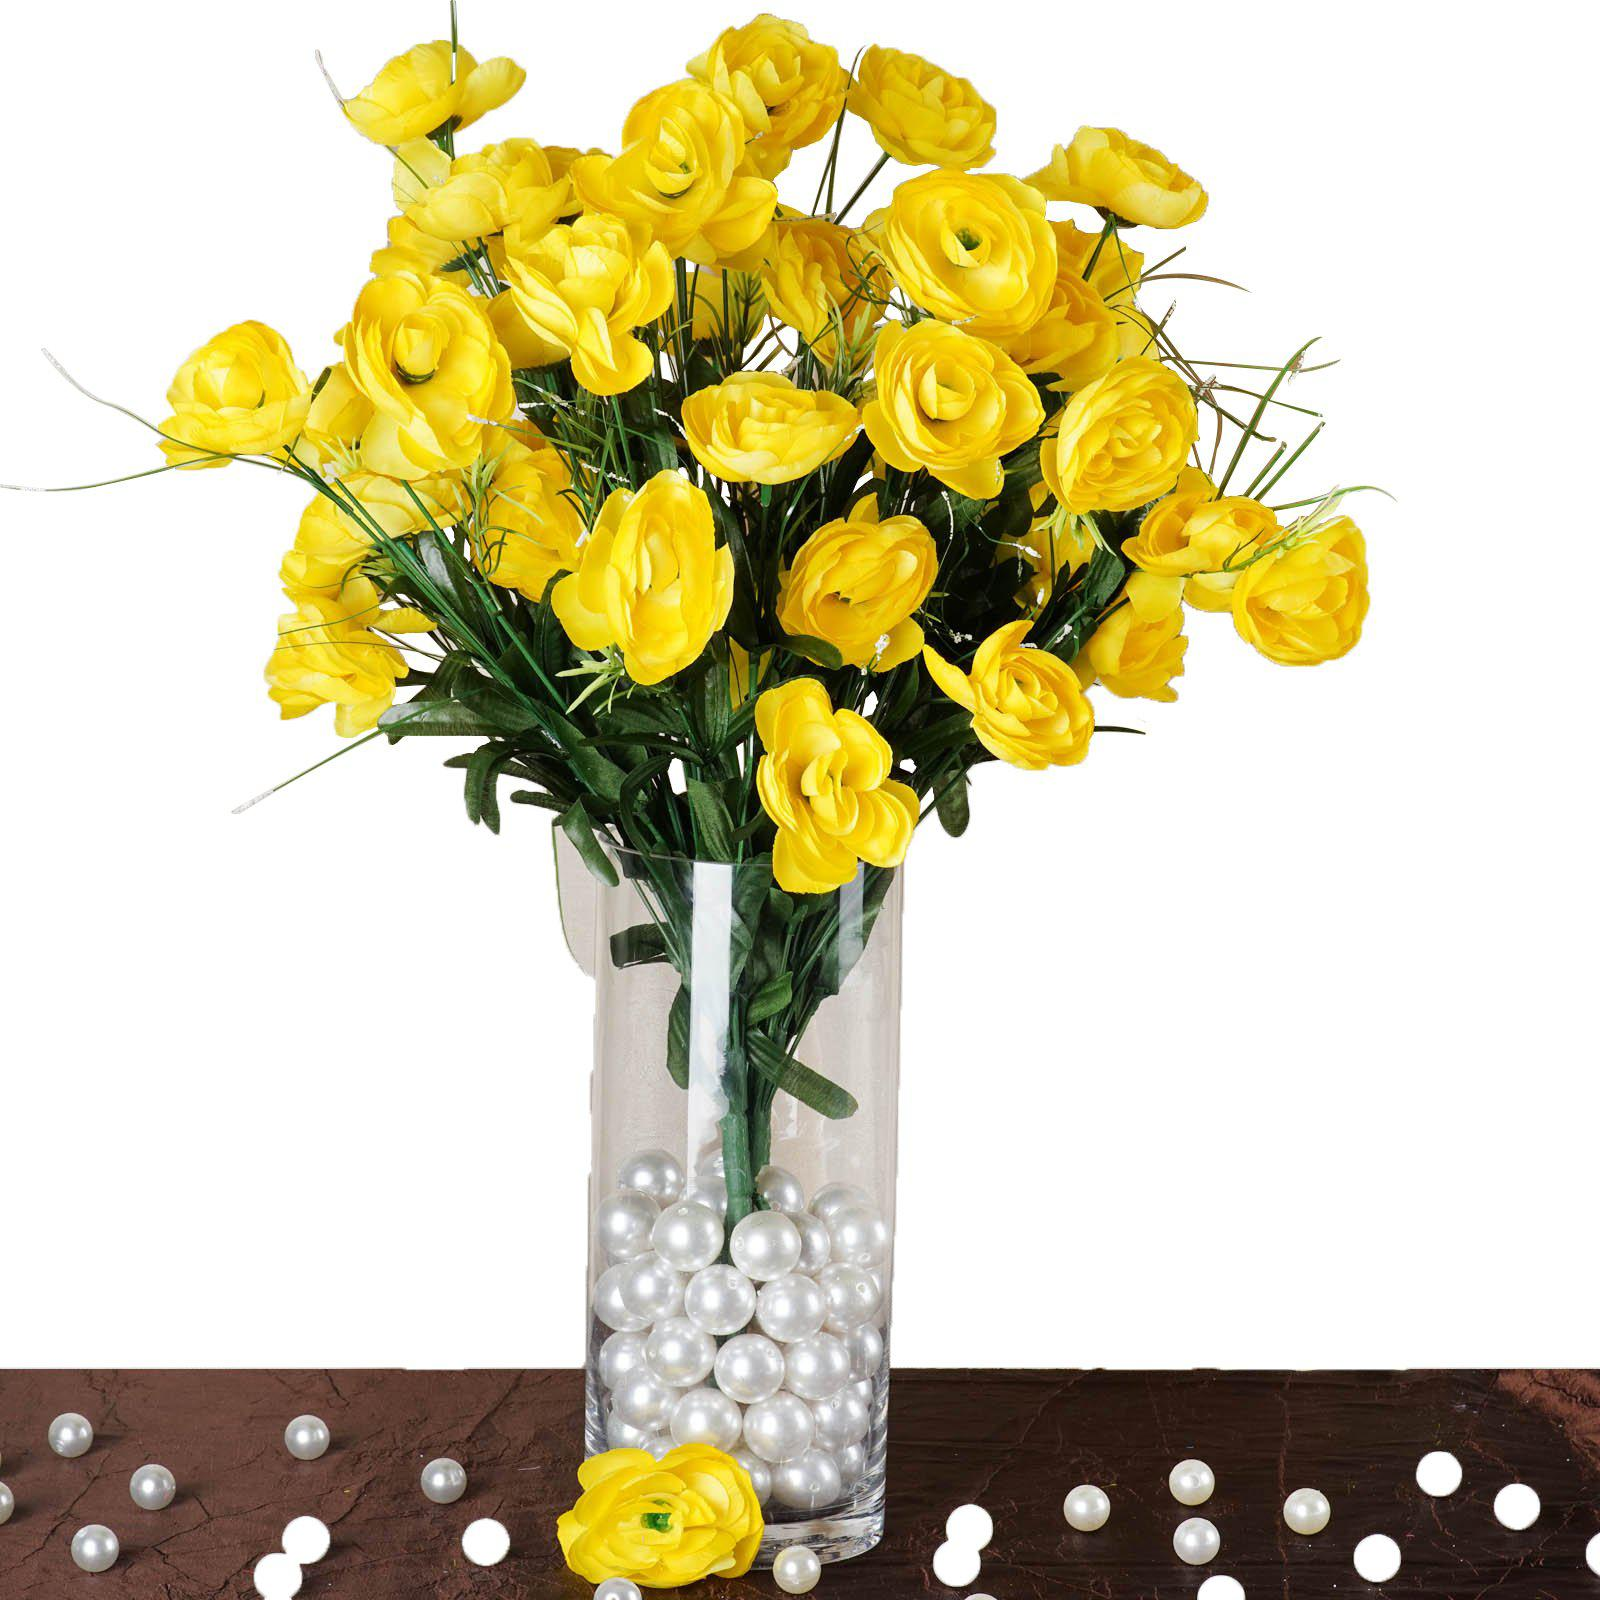 4 Bush 72 Pcs Yellow Artificial Buttercup Bulb Flowers Bridal